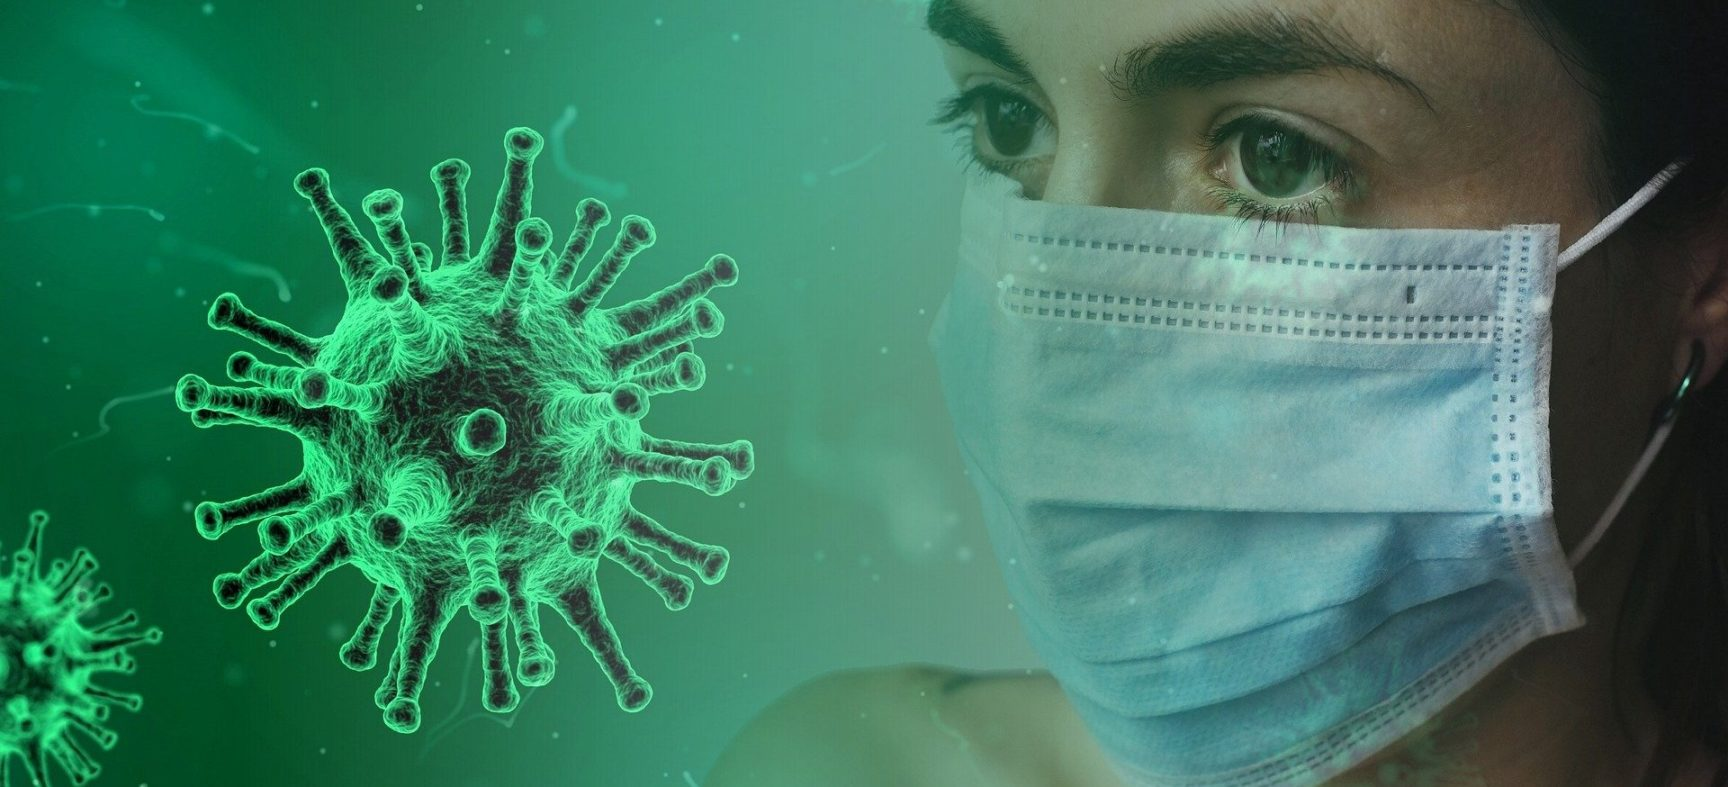 Patienteninformation zum CORONA-Virus